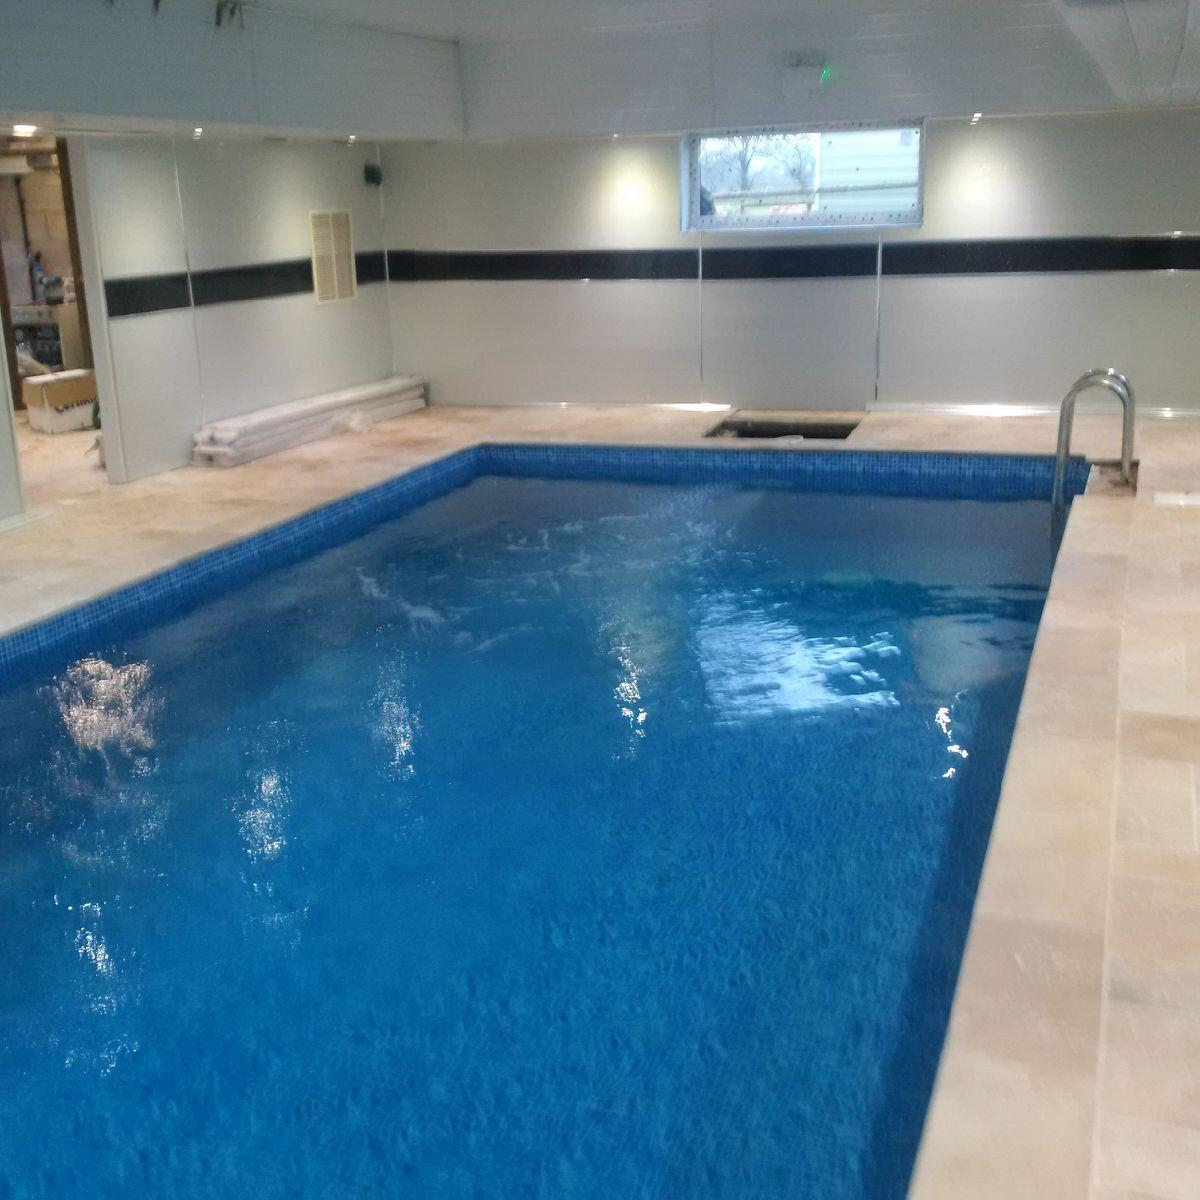 Gallery shropshire shrewsbury for How to build an indoor pool